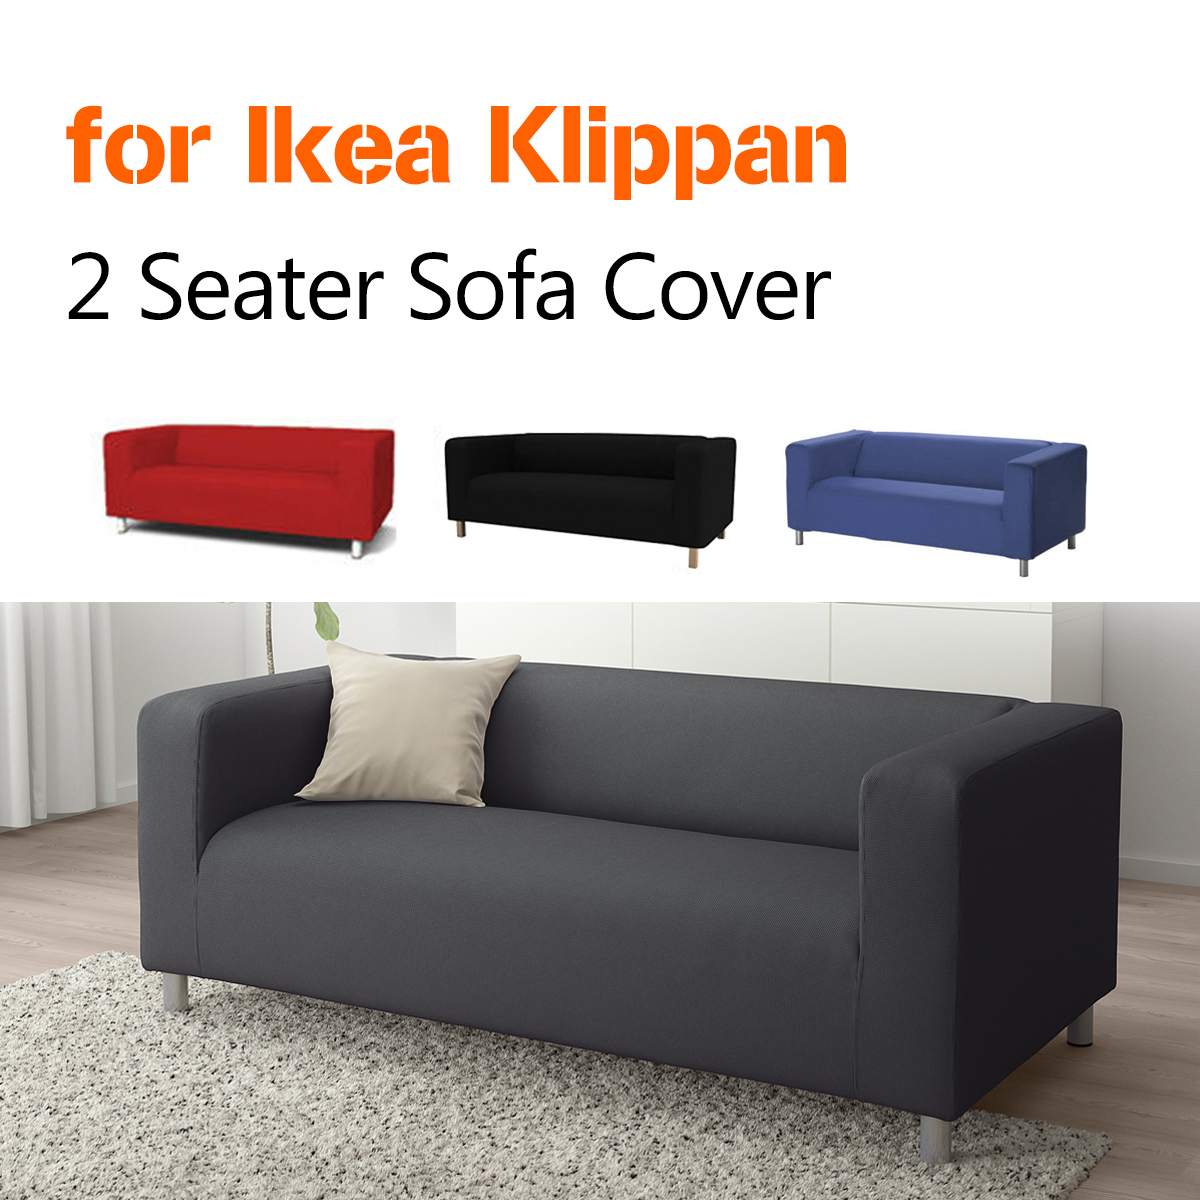 Silla Klippan Details About Stretch Slipcover 2 Seater Sofa Chair Couch Cover Soft Loveseat For Ikea Klippan